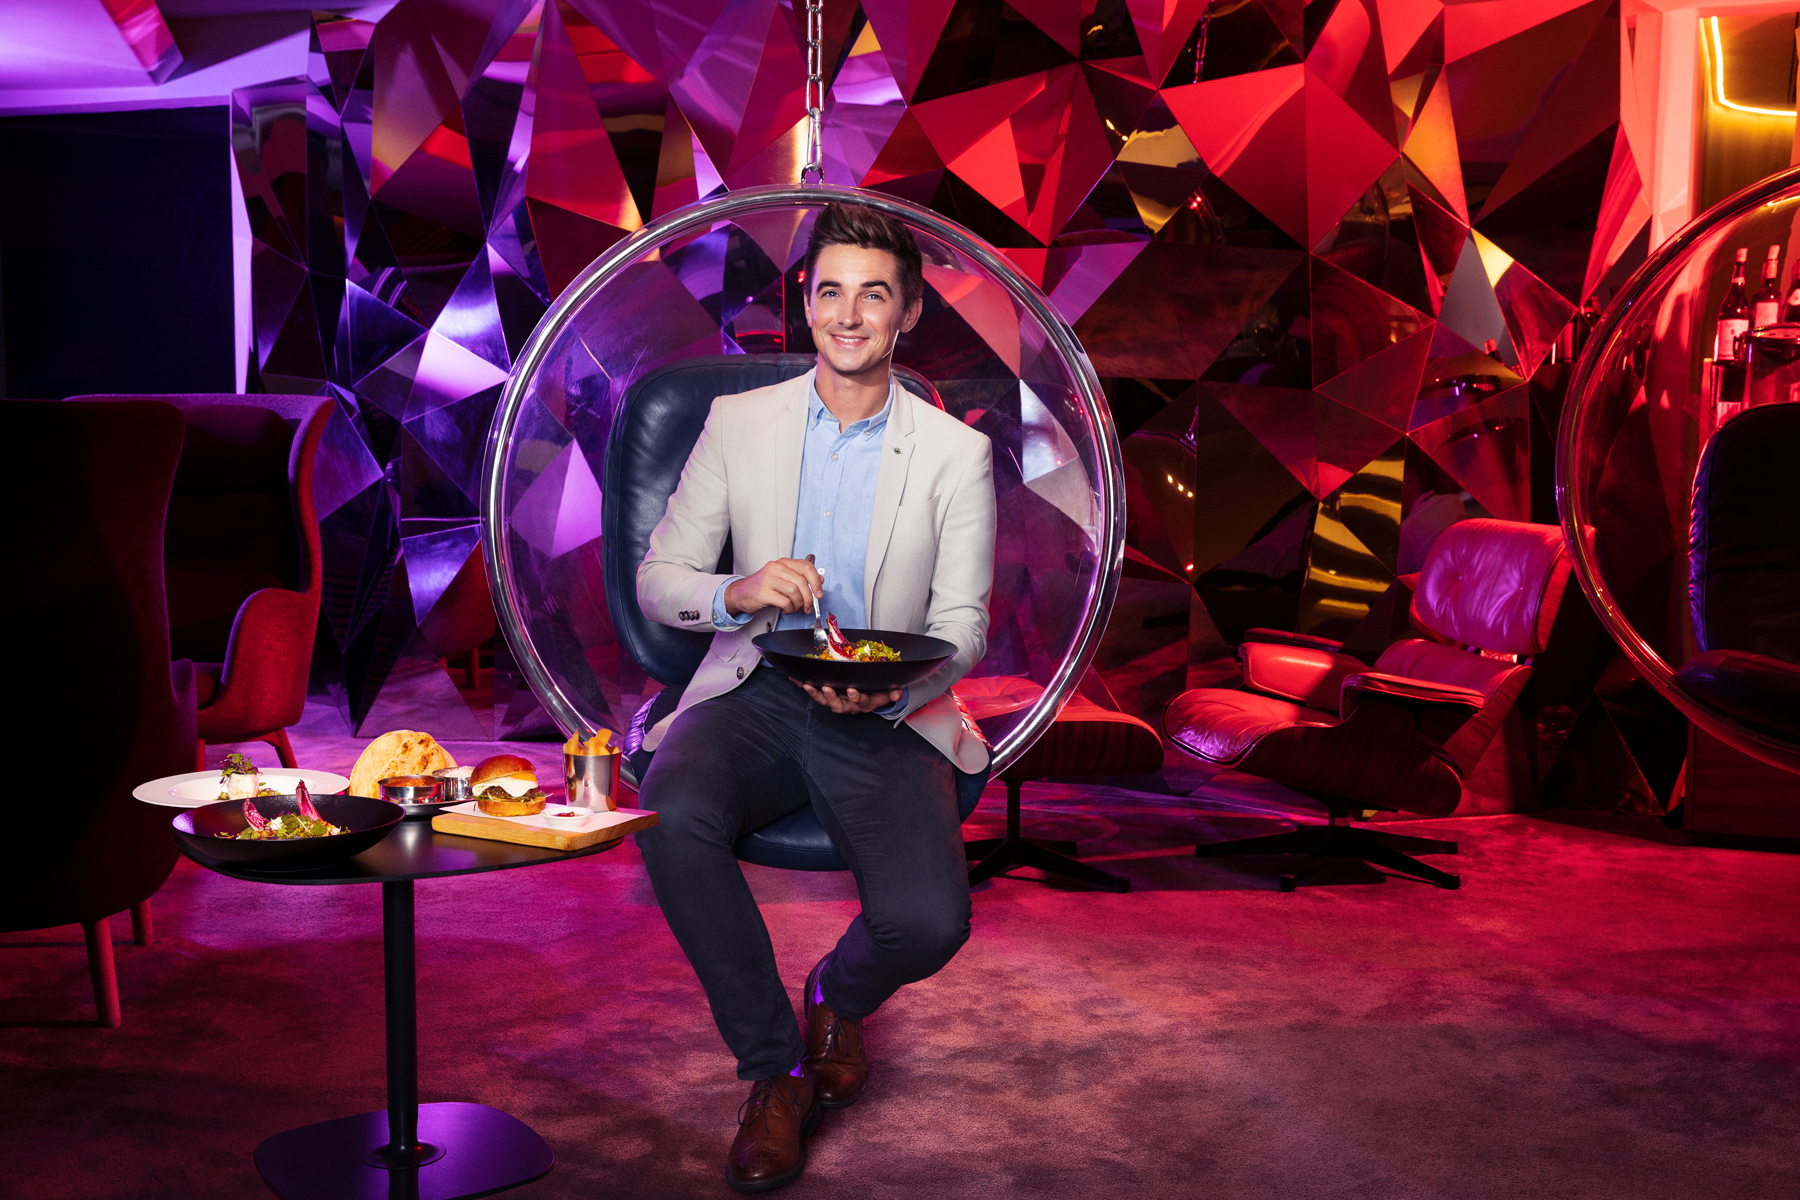 Donal Skehan, creator of the new lounge menu for Virgin Atlantic